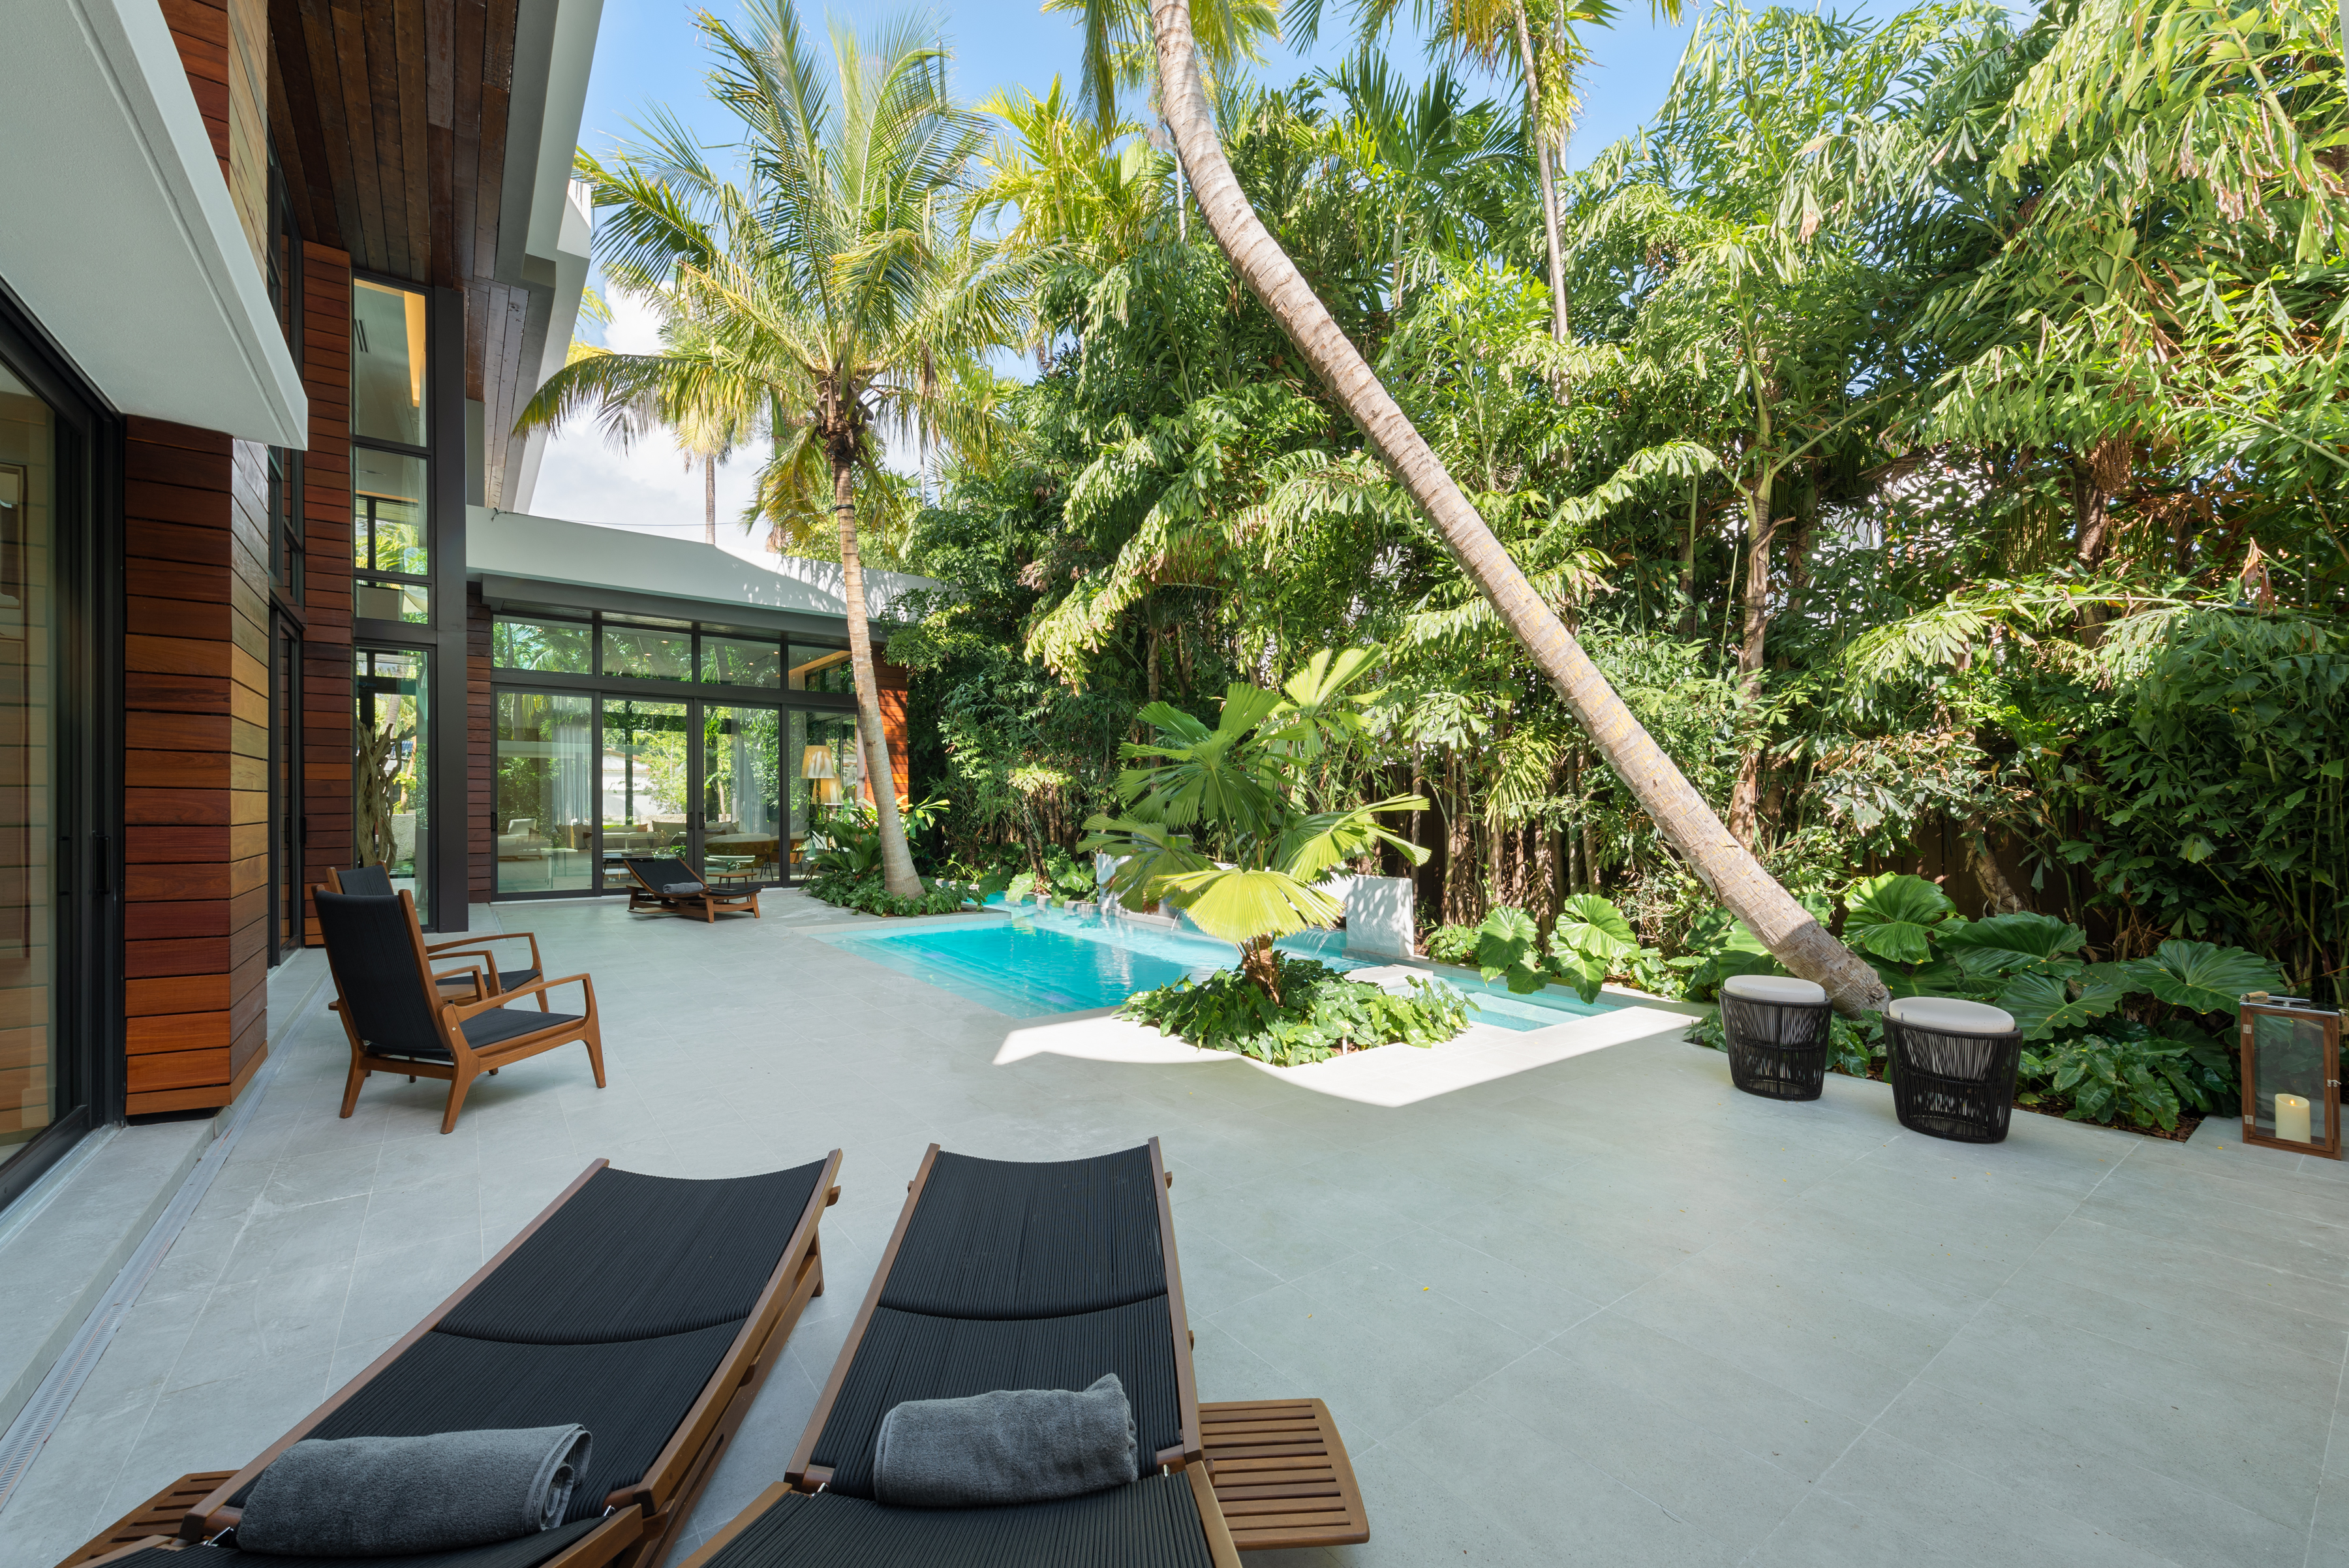 Relax by the Pool in Your Own Tropical Paradise